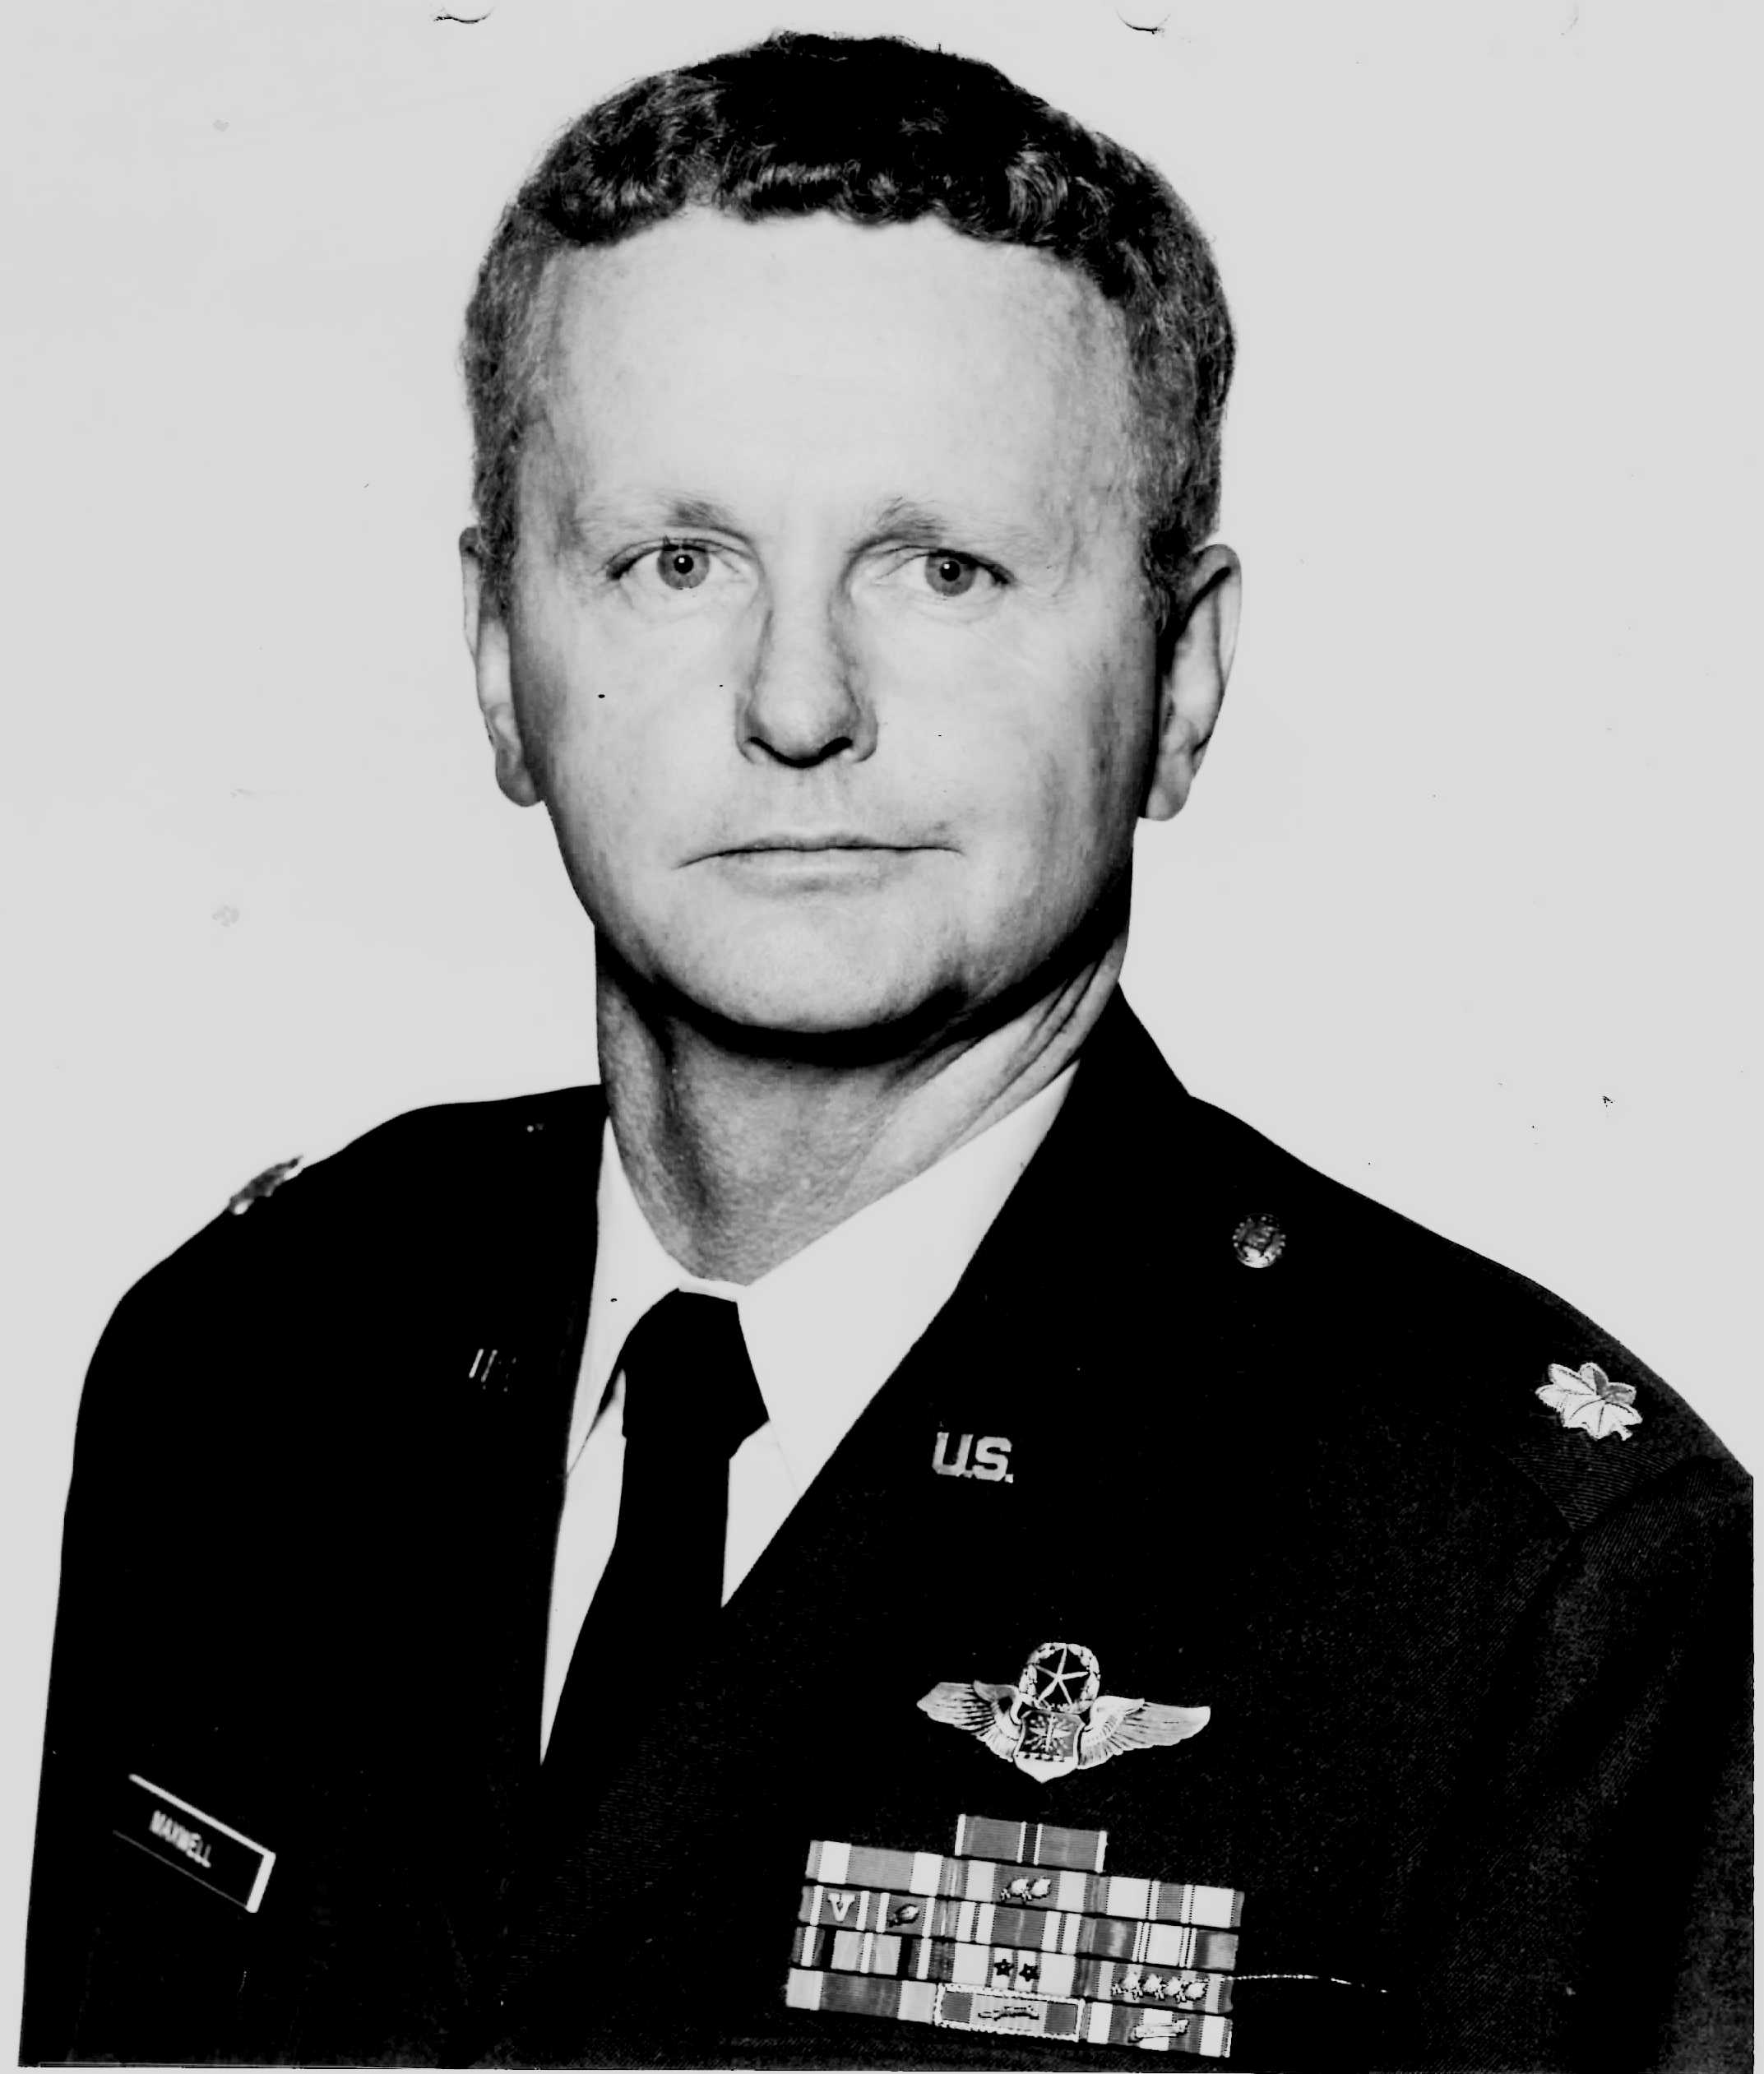 WILLIAM (BILL) NEWTON MAXWELL (LT. COLONEL RETIRED)